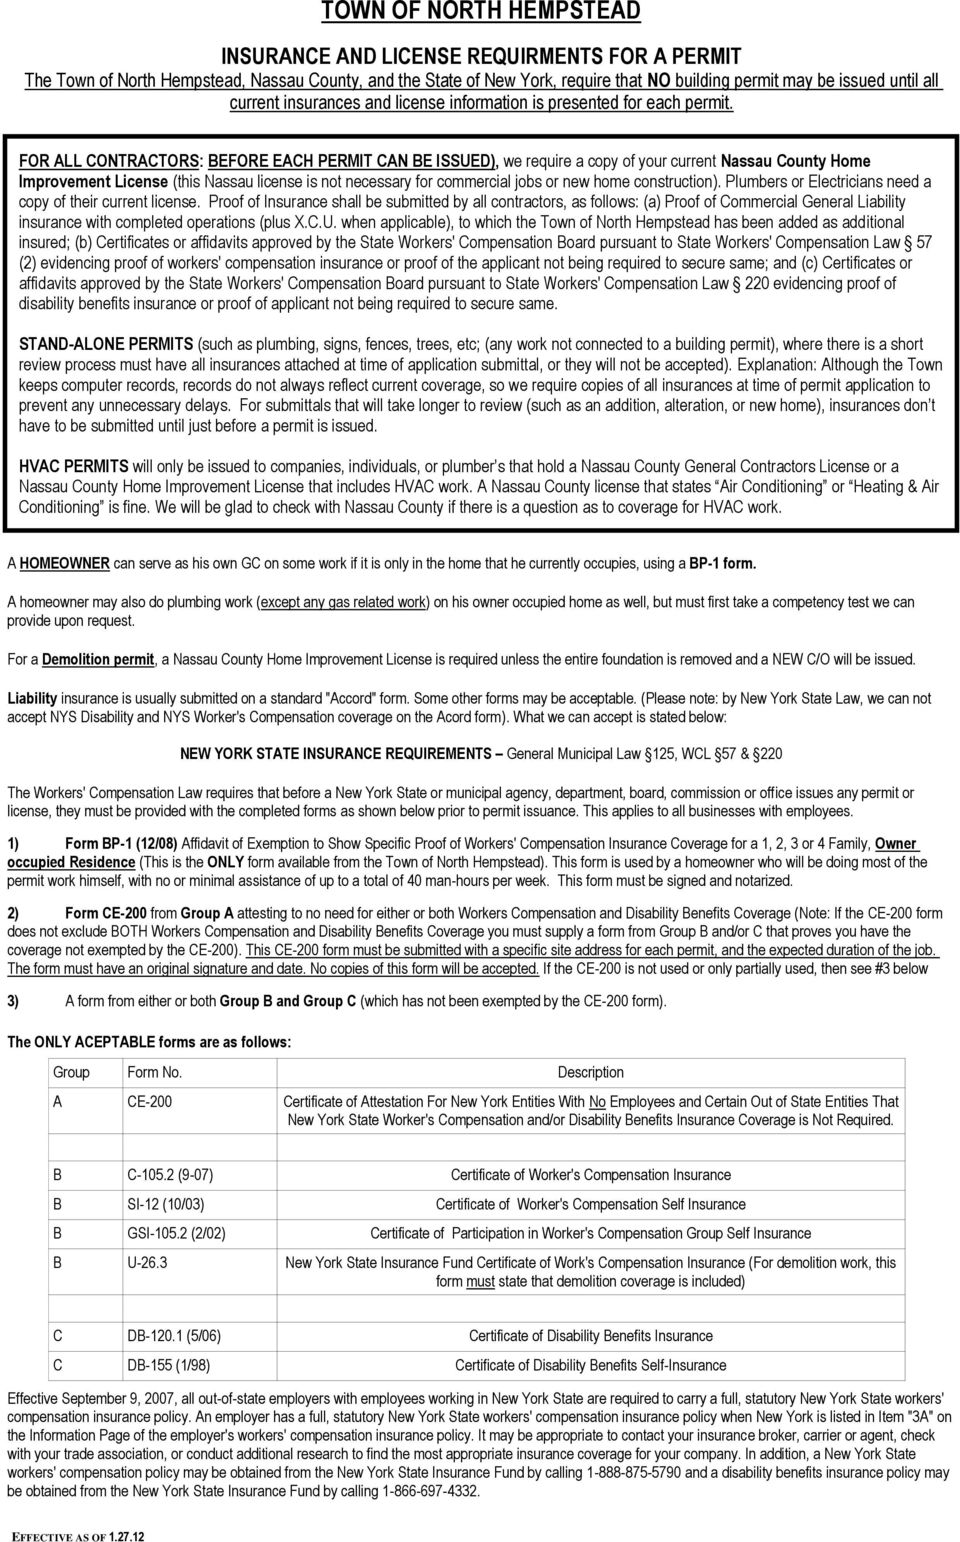 PLUMBING PERMIT REQUIREMENTS AND CHECKLIST - PDF